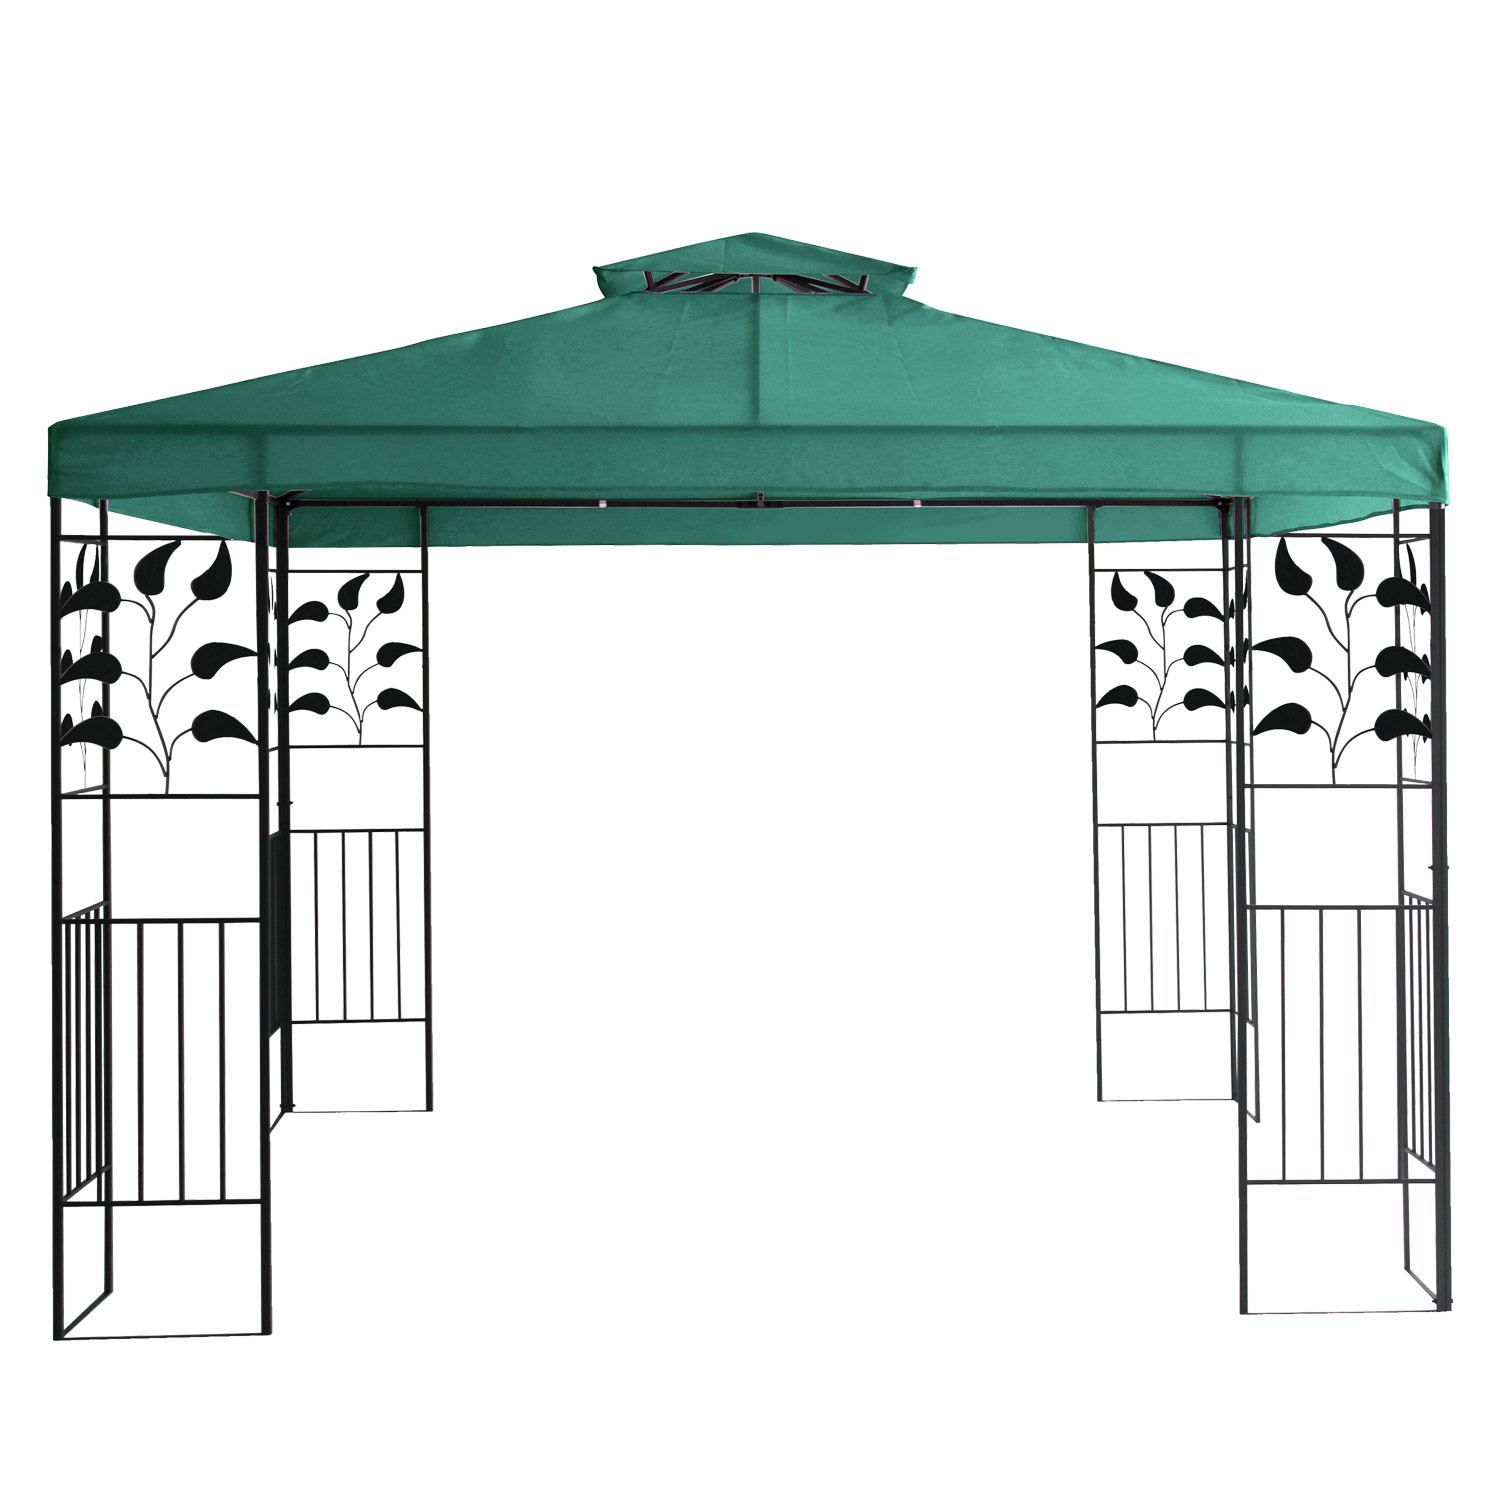 metall gartenpavillon 3x3 gazebo mit entl ftungsfunktion garten pavillon gr n. Black Bedroom Furniture Sets. Home Design Ideas